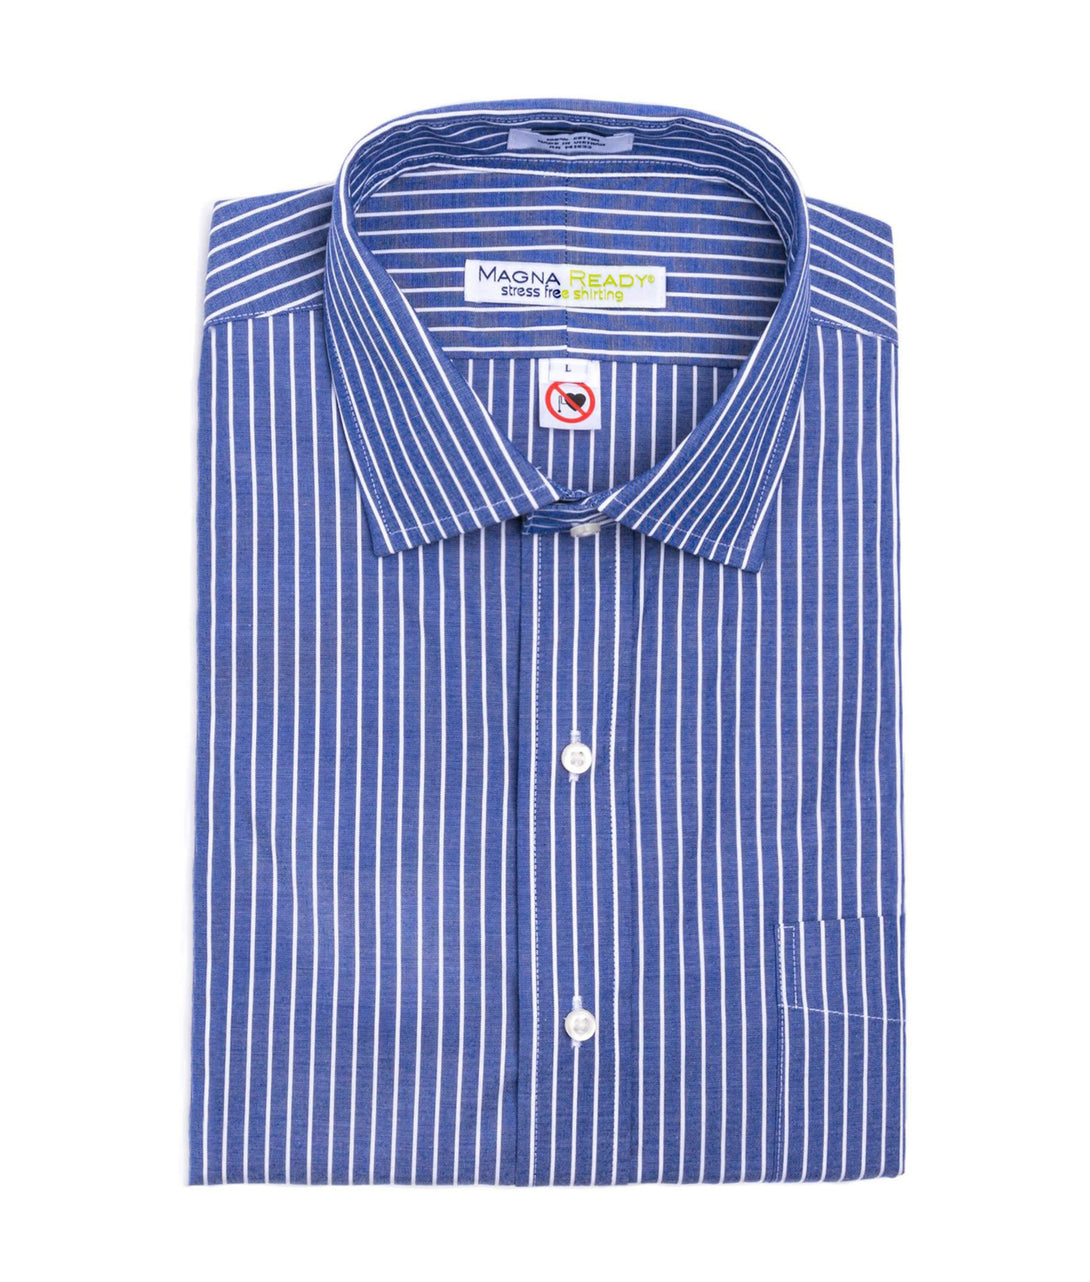 Navy and White Pinstripe Long Sleeve Shirt with Magnetic Closures | JUNIPERunltd